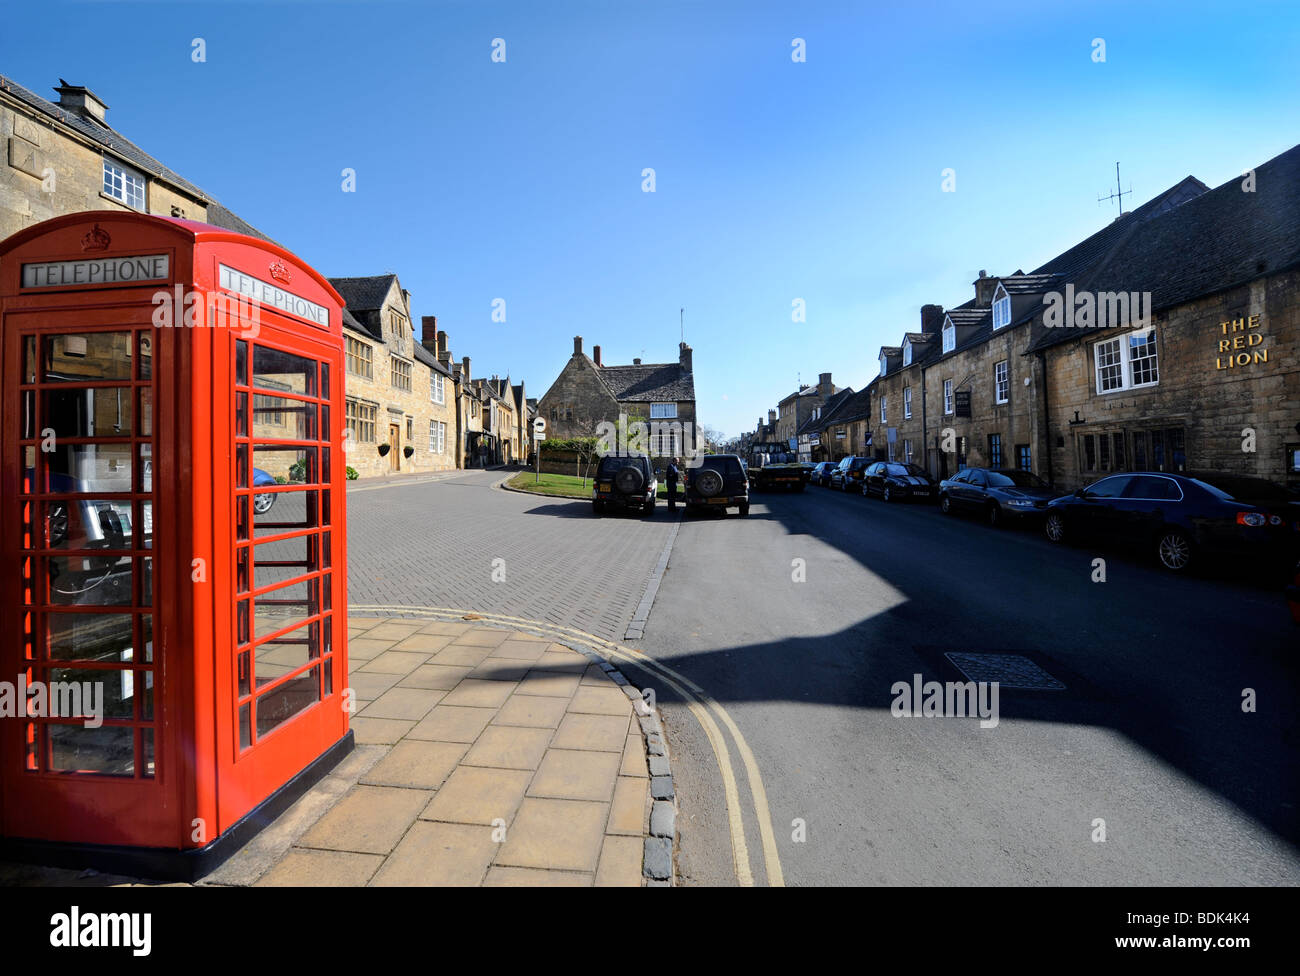 TRADITIONAL RED PHONE BOX IN CHIPPING CAMPDEN HIGH STREET GLOUCESTERSHIRE UK - Stock Image